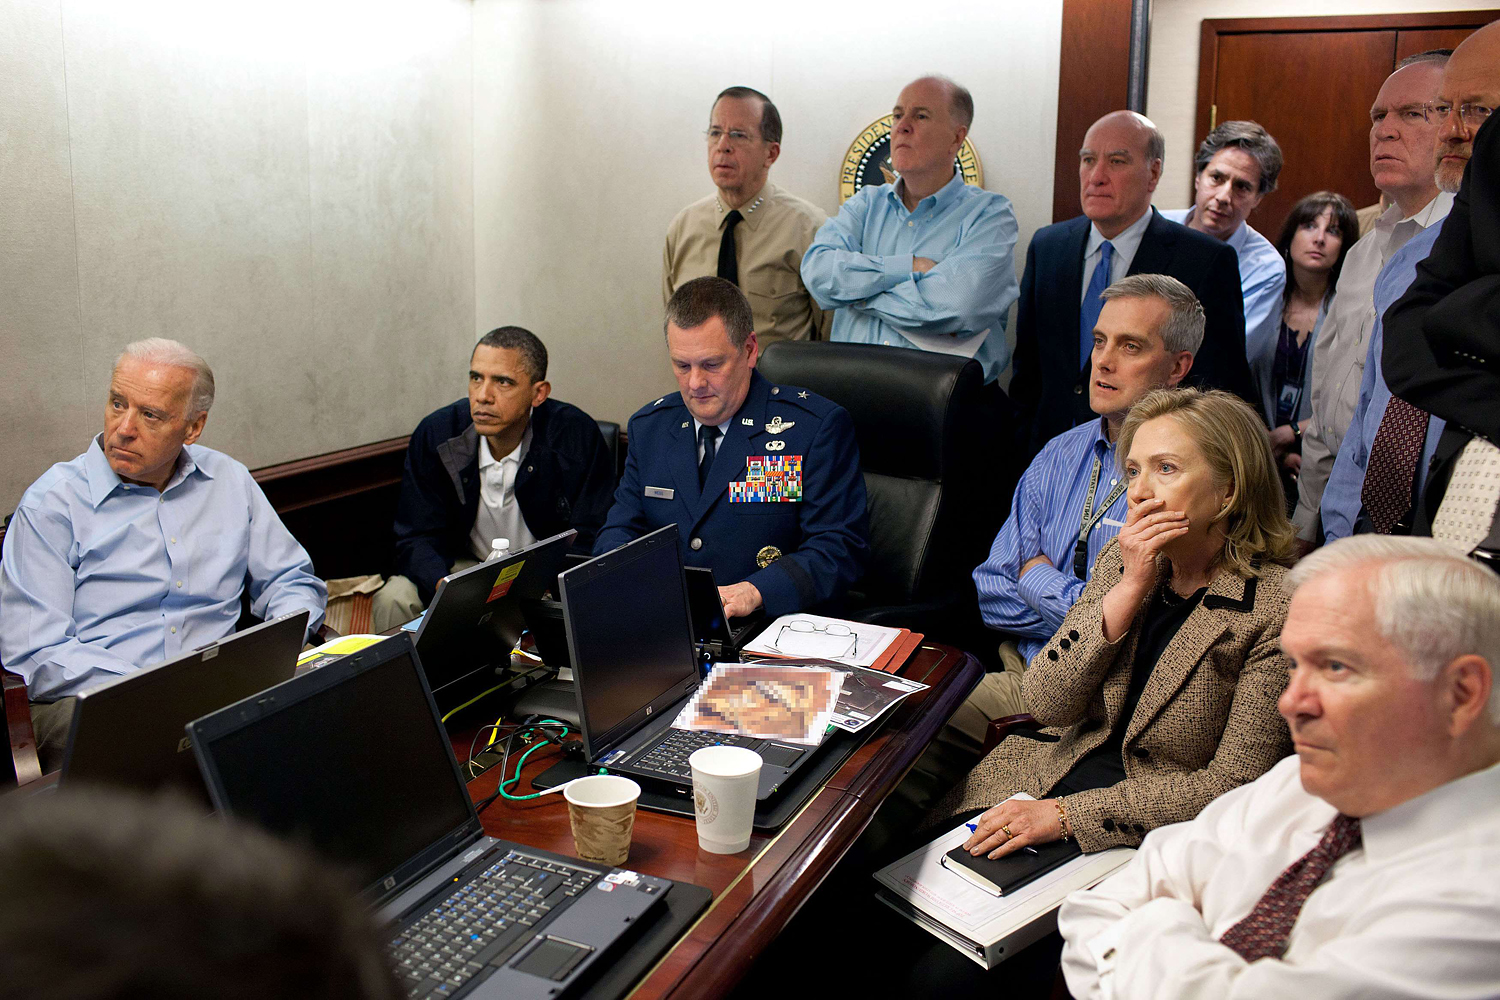 """The White House Situation Room, May 1, 2011                               This photograph, from inside the President's """"war room,"""" shows the Commander in Chief and key members of his national security team watch live intelligence as US forces assault a Osama bin Laden's compound within Pakistan. On the center of the table, in front of Secretary of State Hillary Clinton, sits a classified document that was obscured by the White House before it was released to the press."""